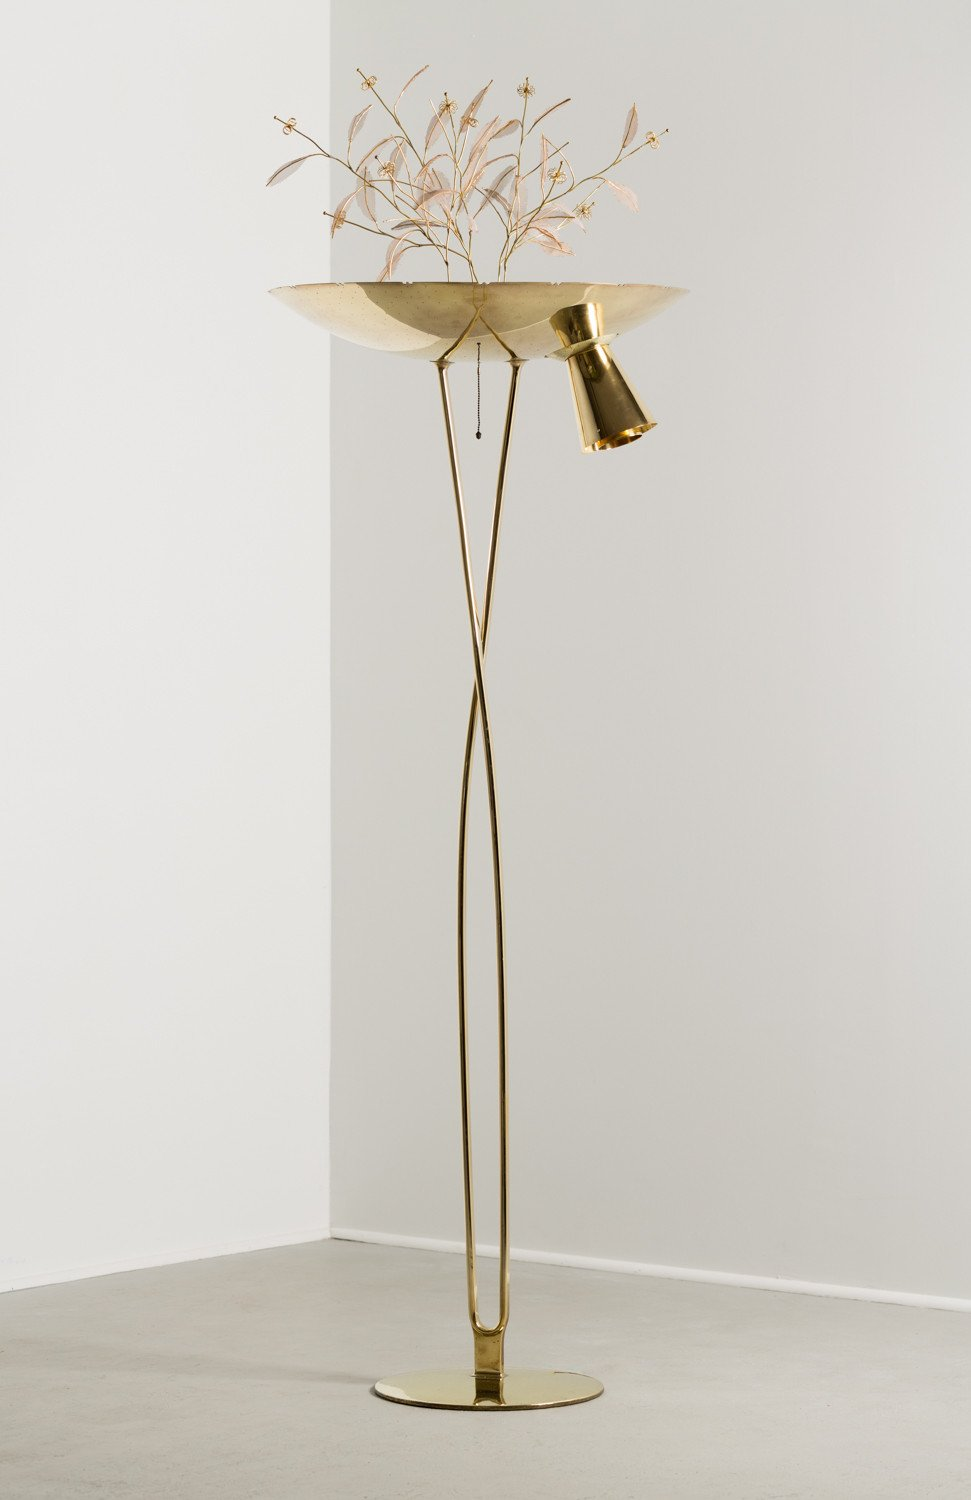 [SOLD] Paavo Tynell Floor Lamp, Model 10506